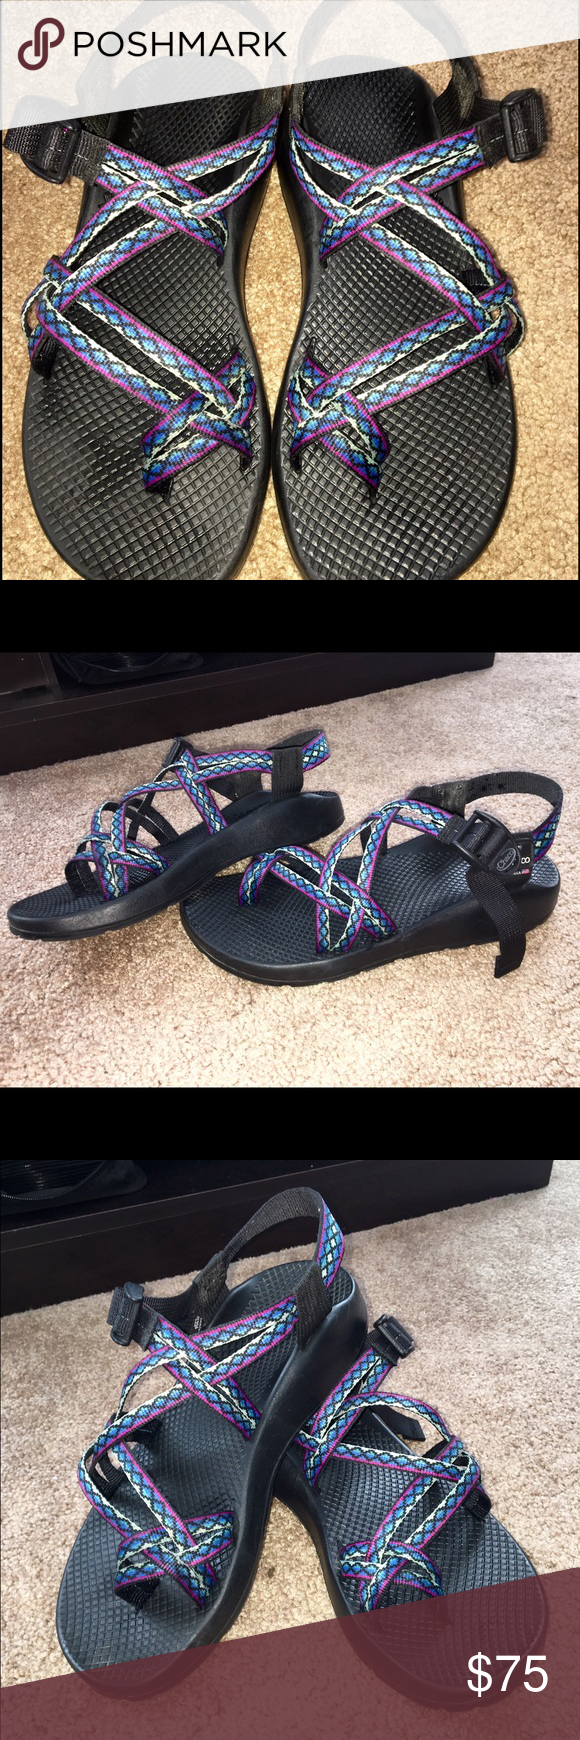 b7c69fa60364 Double strap chacos with toe strap Only worn about 4 times